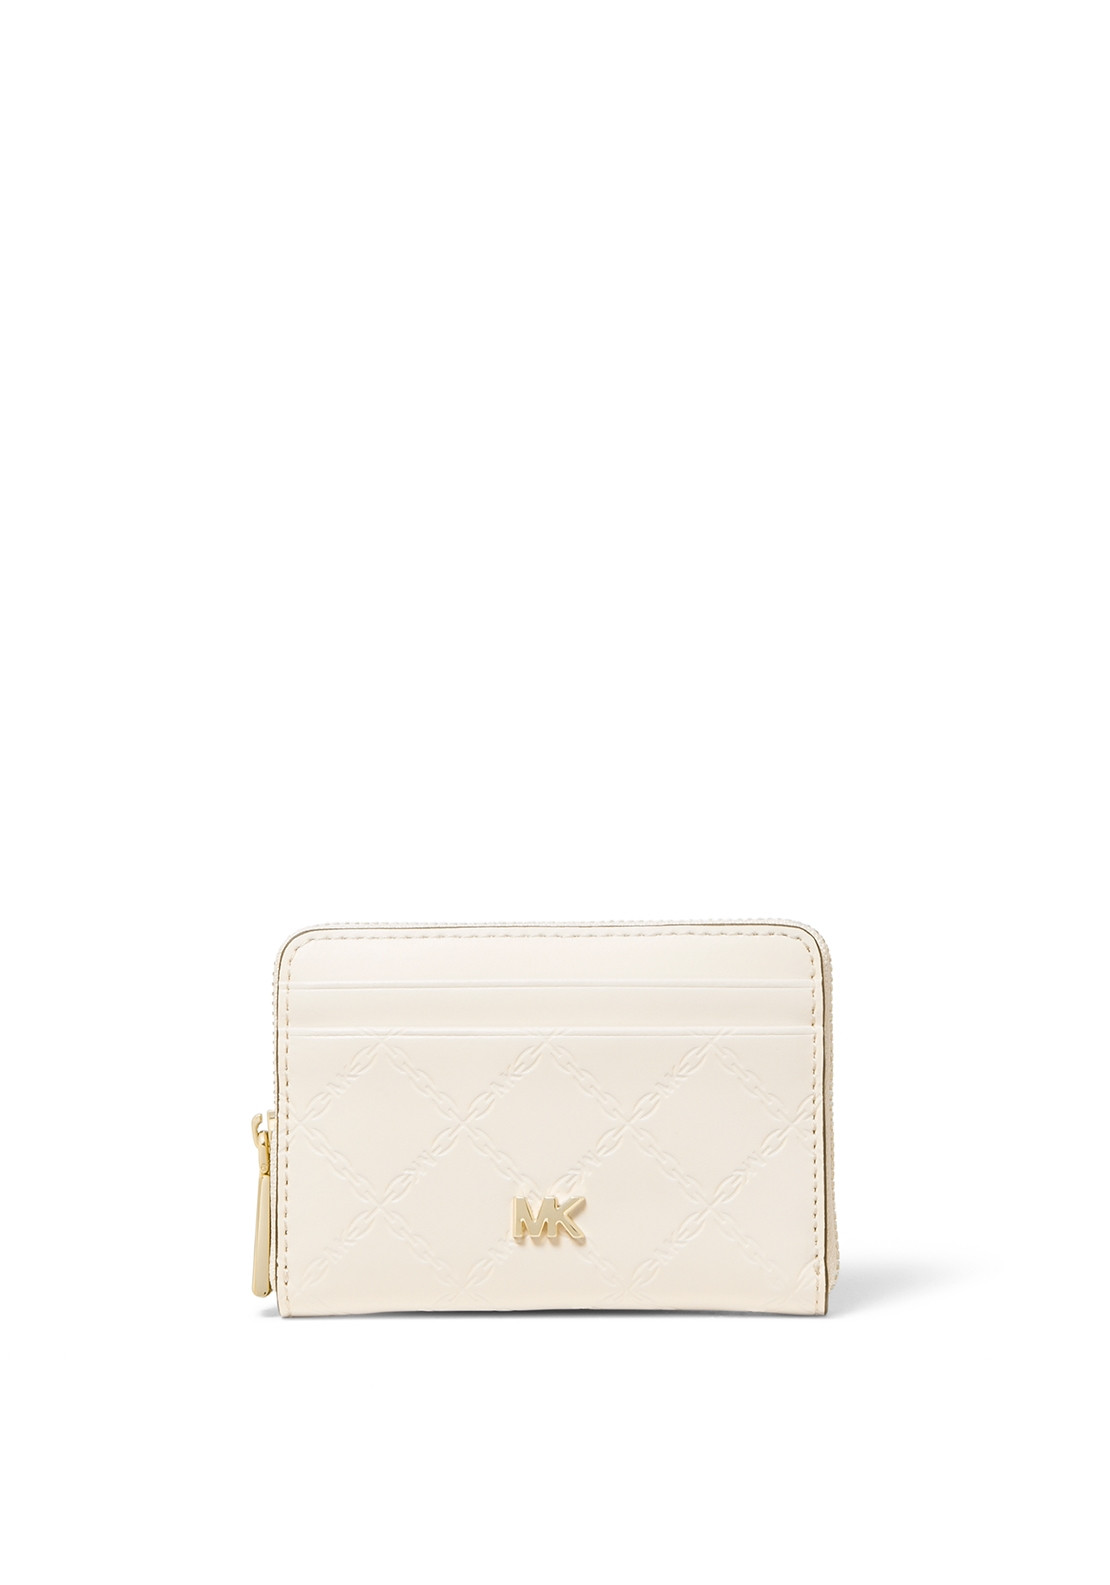 cda947cca98f MICHAEL Michael Kors Small Chain Embossing Leather Wallet, Cream. Be the  first to review this product